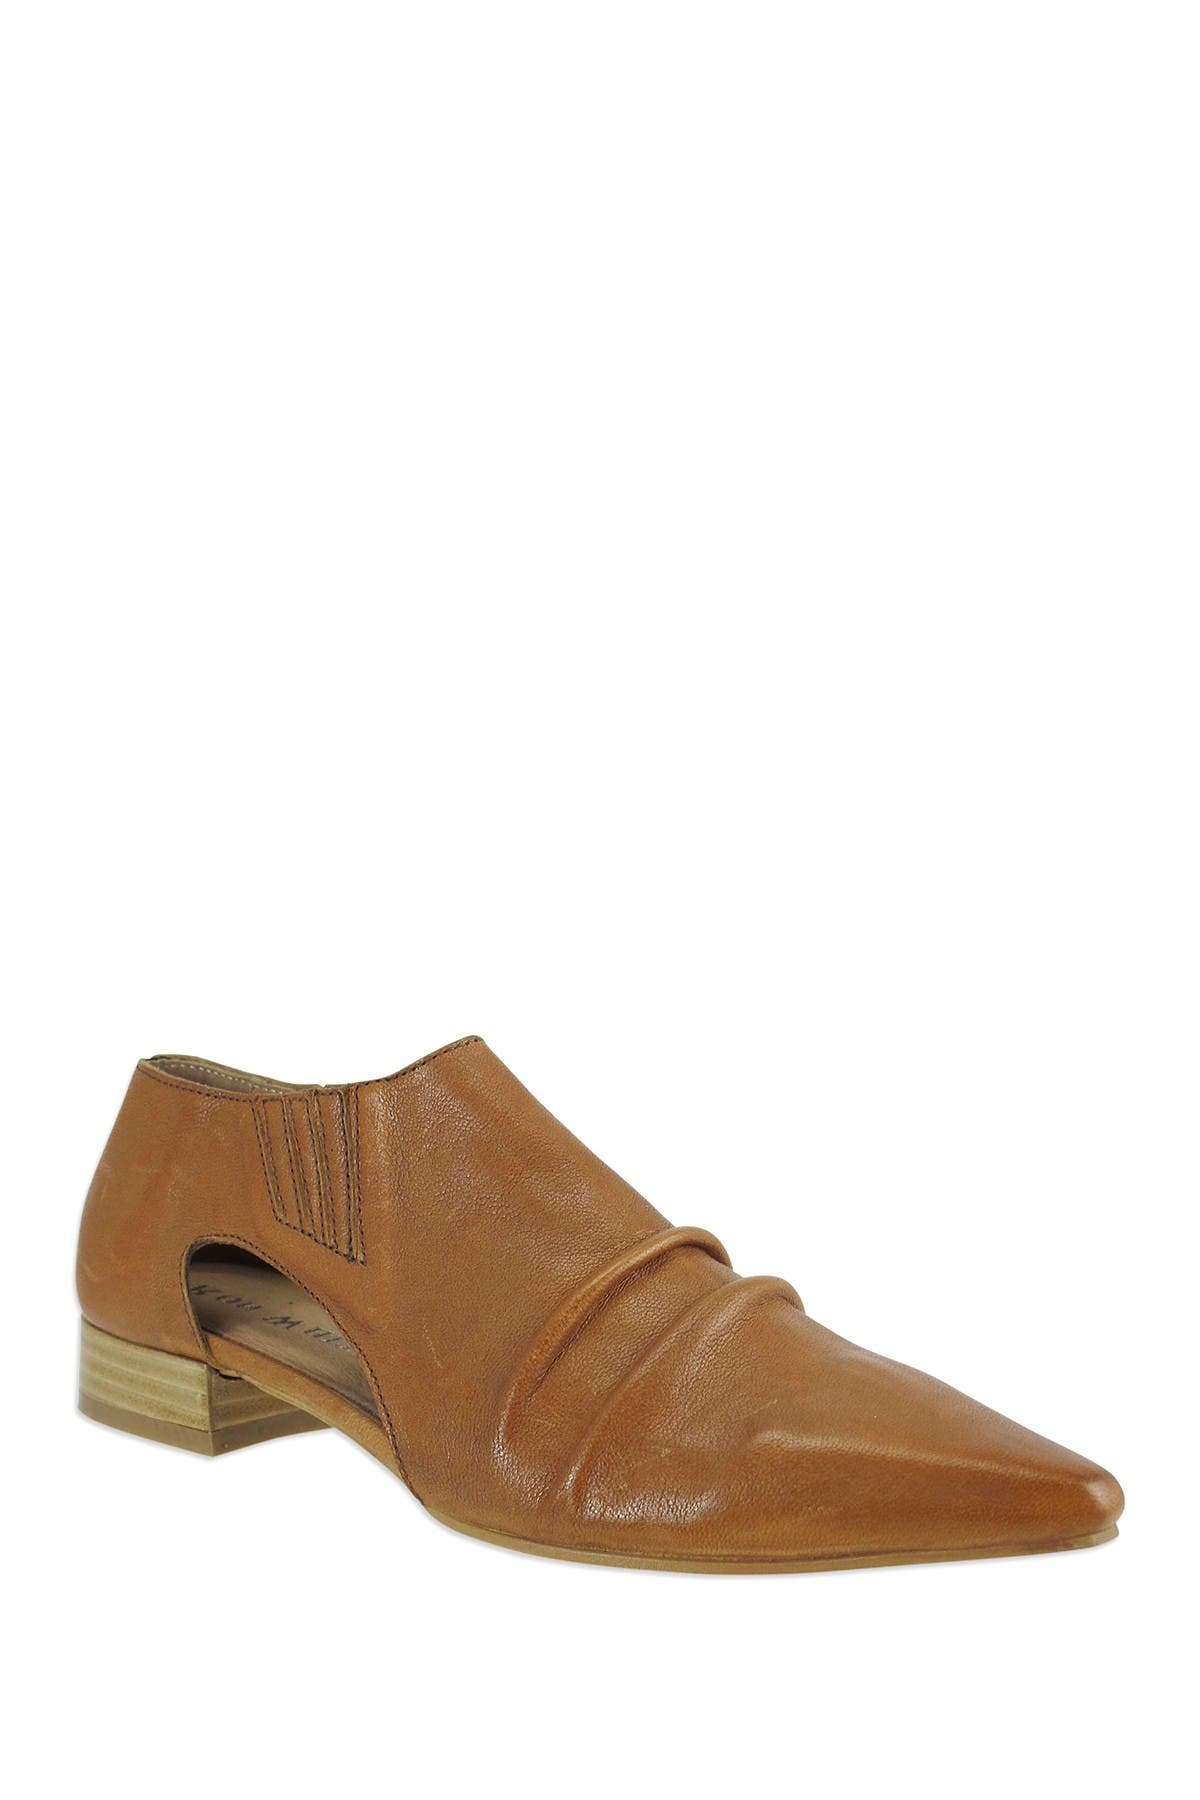 Image of RON WHITE Tessa Cutout Leather Ankle Bootie